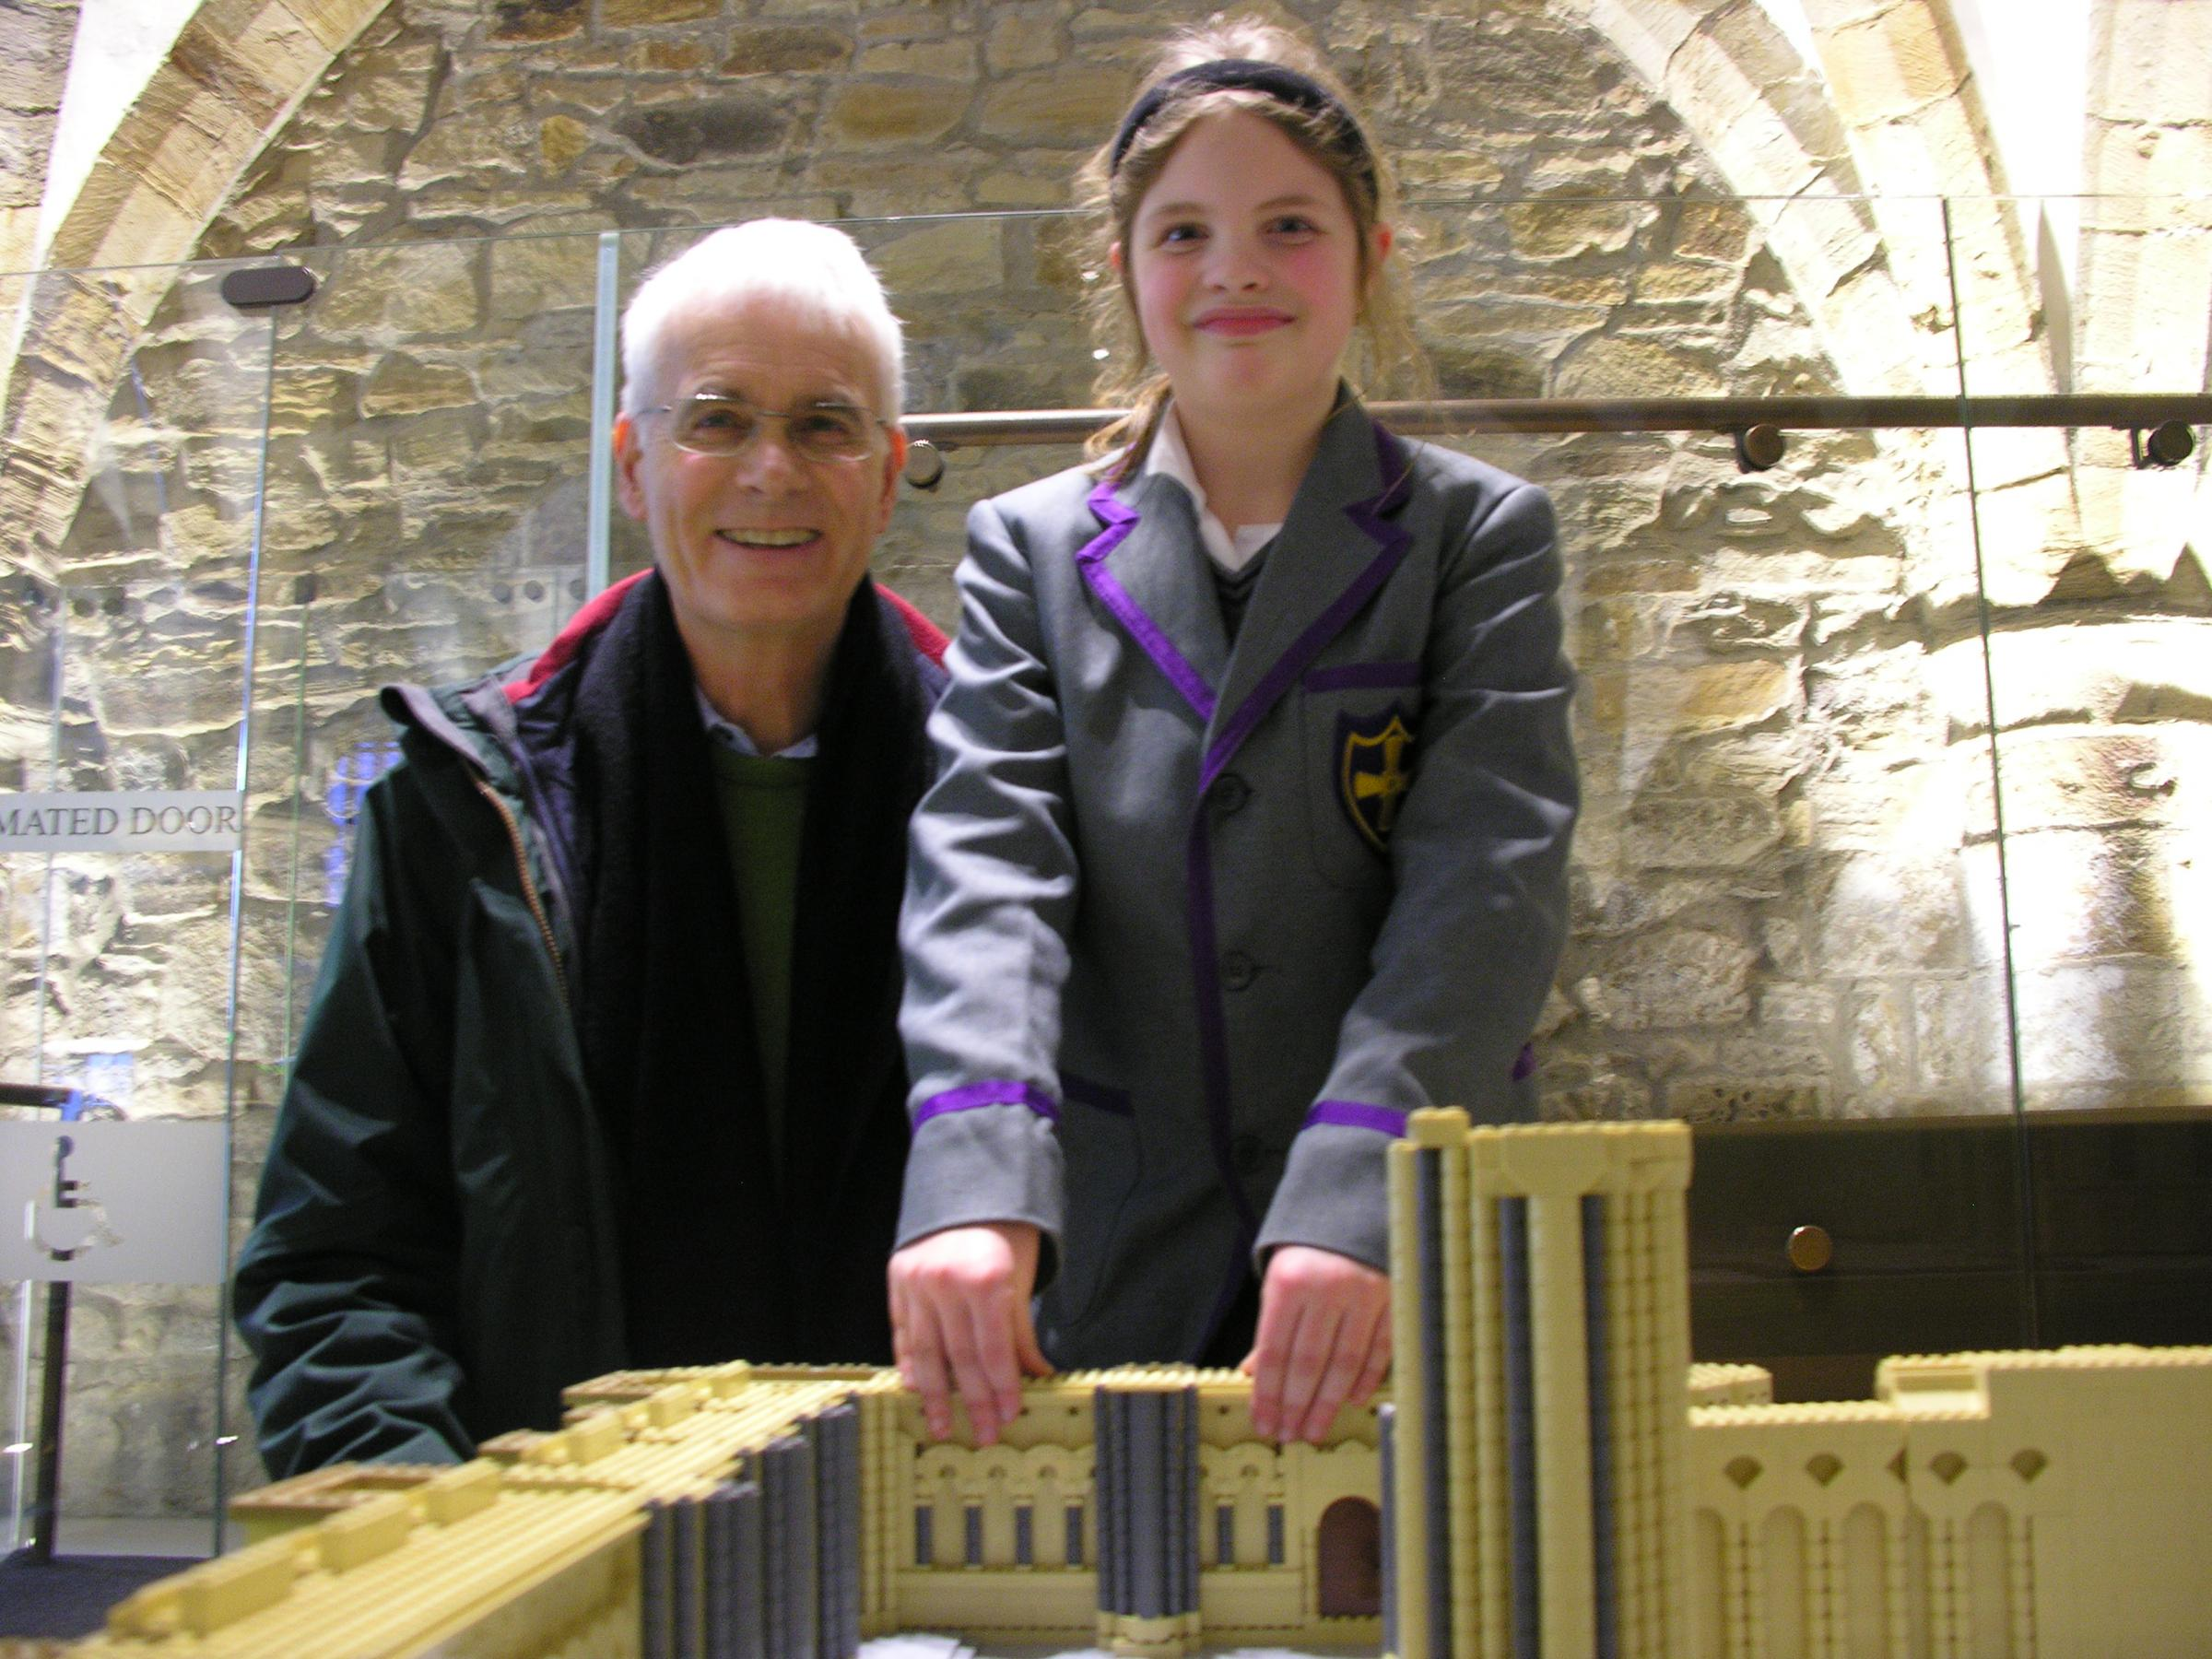 Robert and Beth Stenlake help build the Lego model of Durham Cathedral